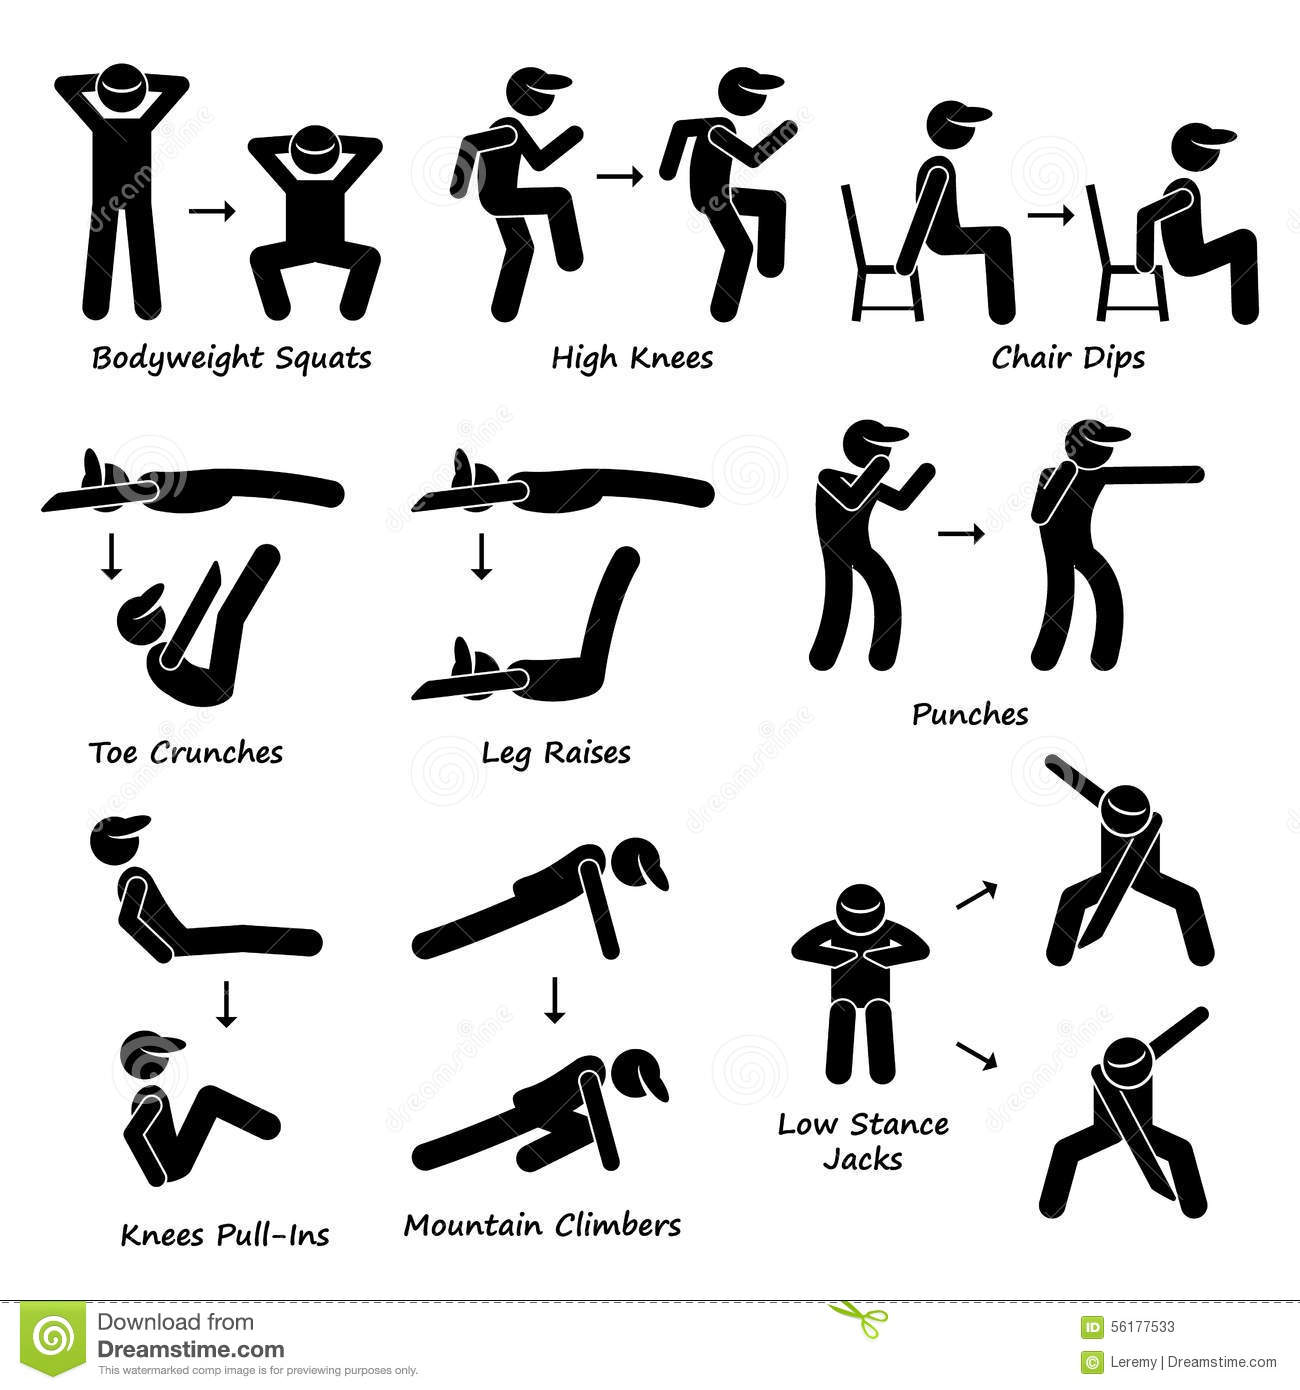 arm chair set body workout exercise fitness training set clipart human pictogram showing plank variation poses bodyweight squats